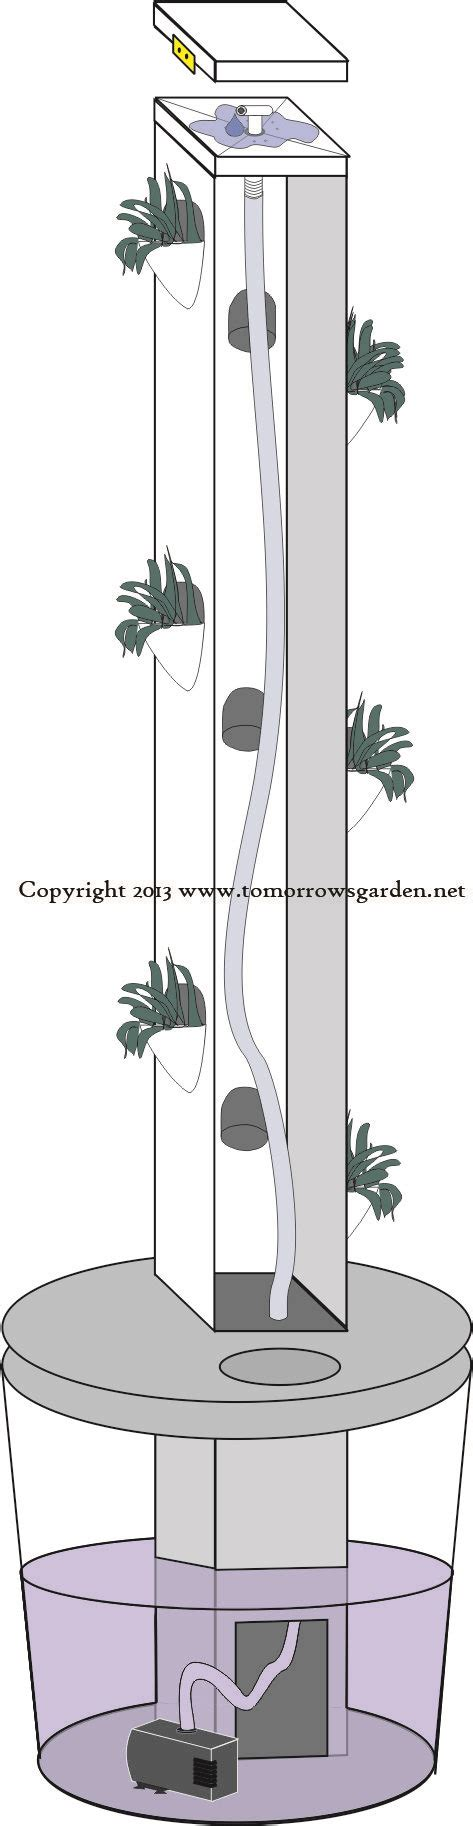 How To Build A Vertical Hydroponic Garden 76 Best Images About Greenhouse Farm On